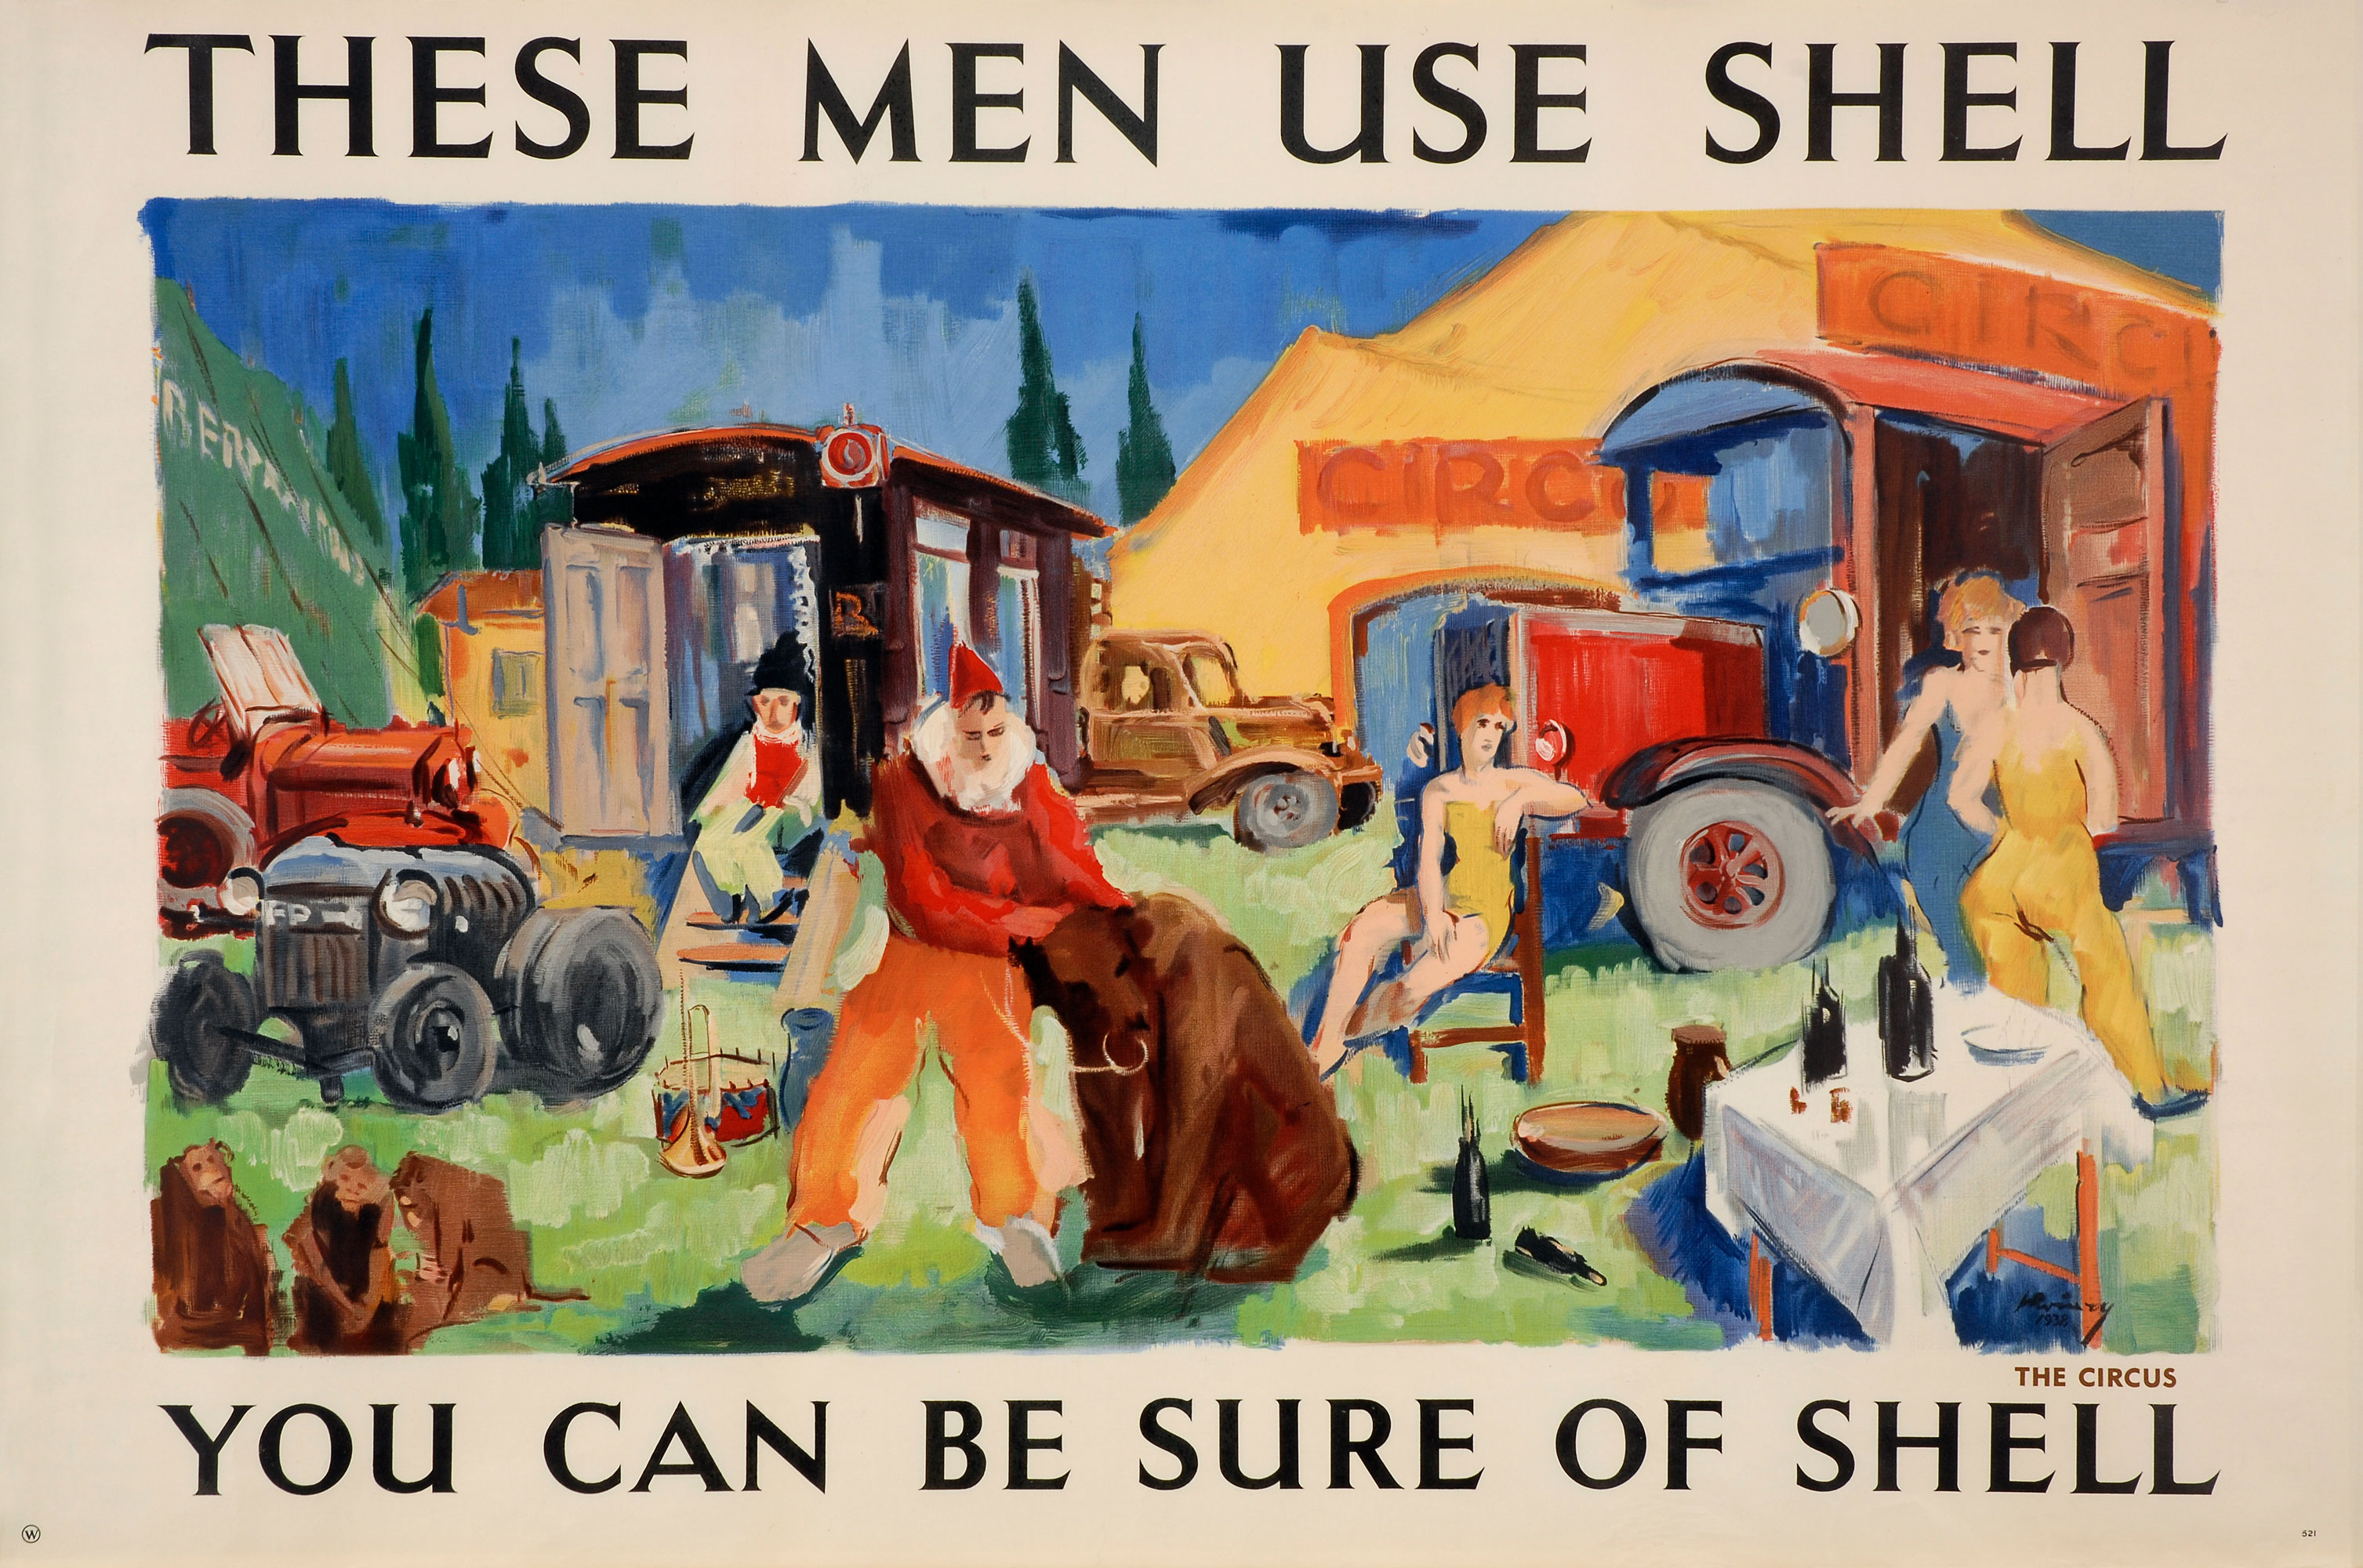 Shell poster number 521, Circus performers use Shell (1938) by Kavari Schwitzer. Painting of a circus scene, including circus vehicles and animals.